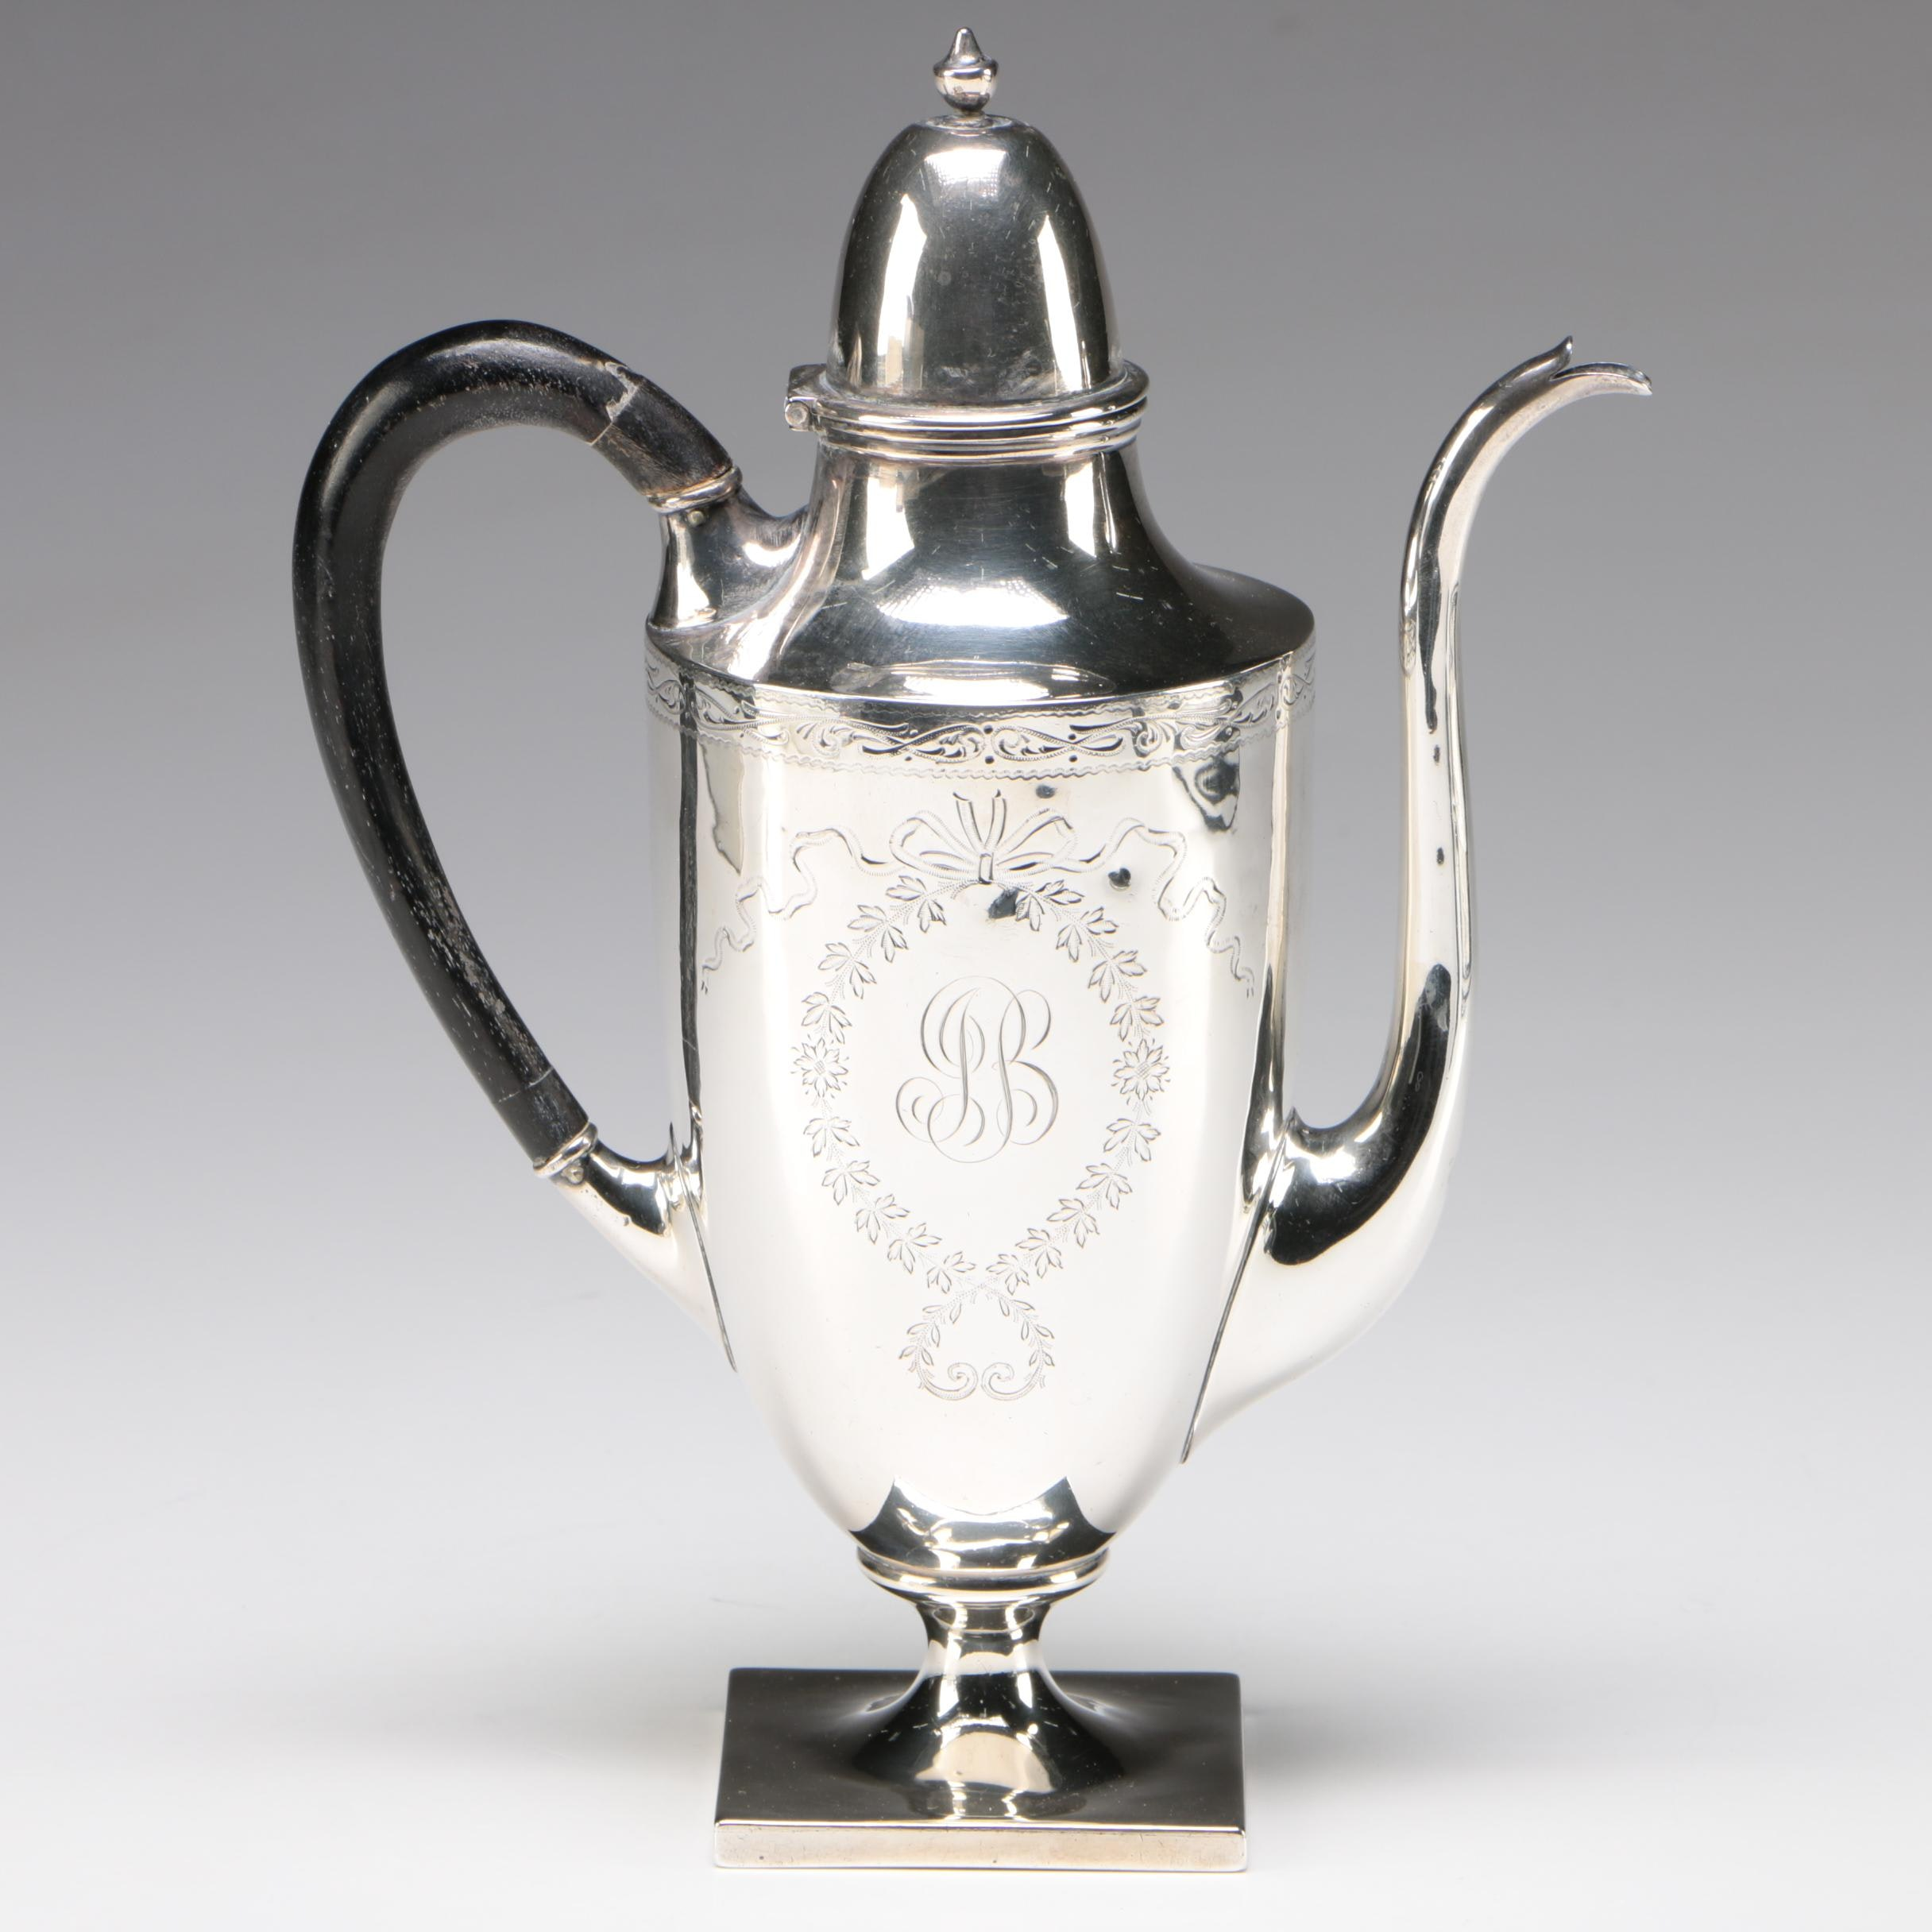 Towle & Co. Sterling Silver Coffee Pot Retailed by Shreve, Crump & Low, Boston